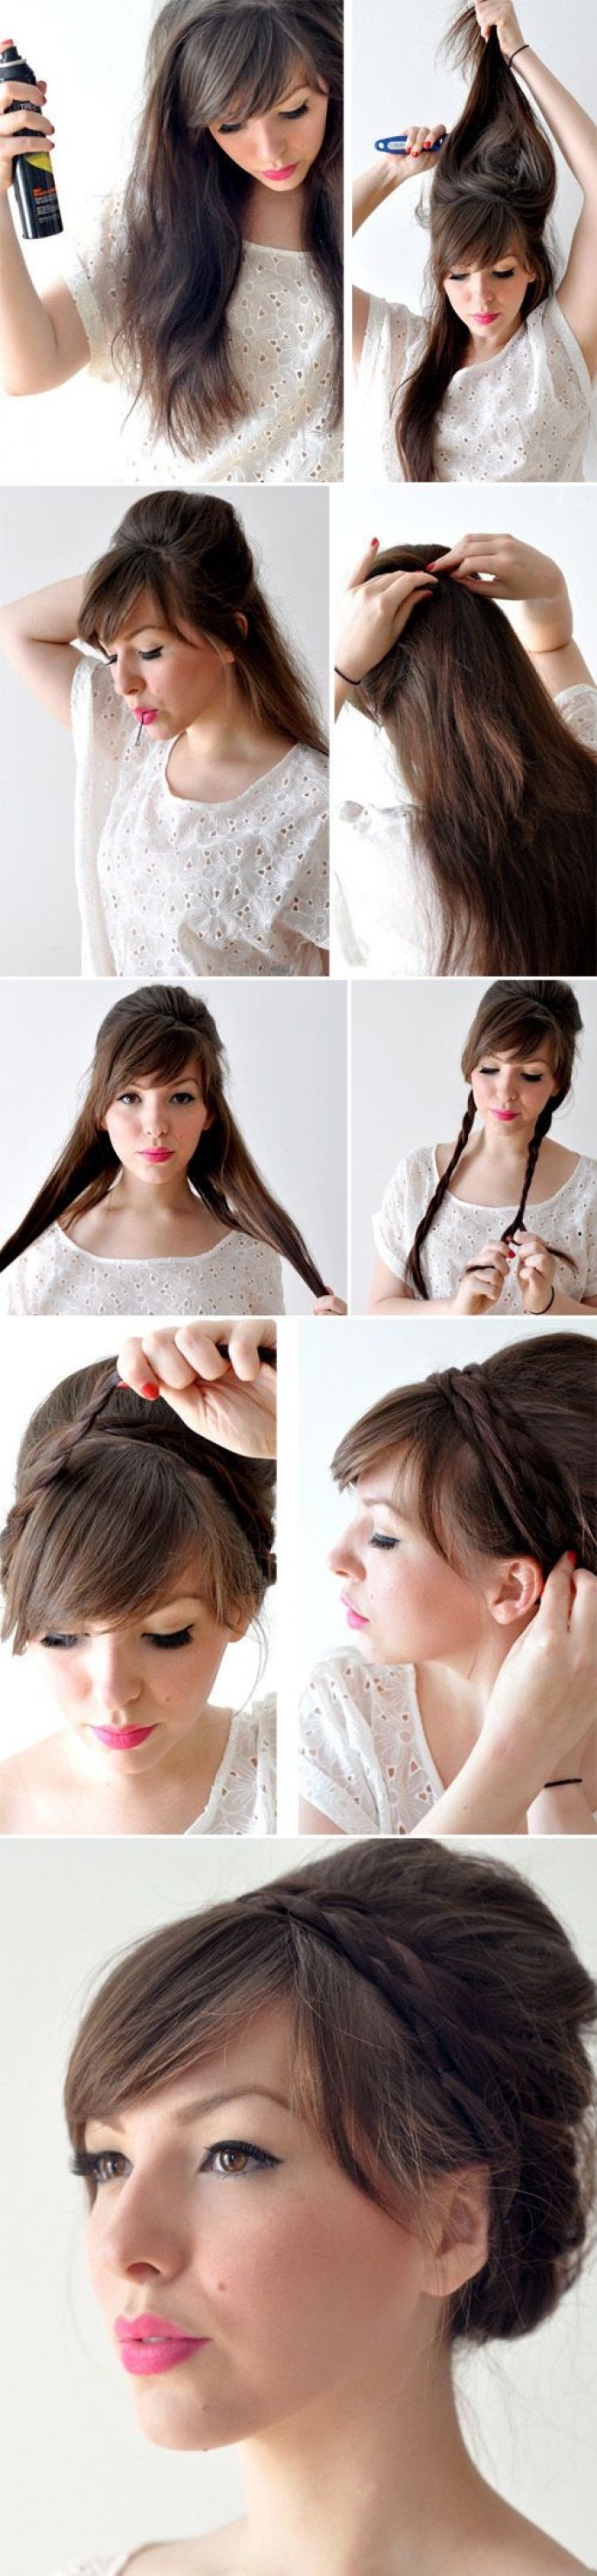 1000 Ideas About Coiffure Frange On Pinterest Fringe Haircut